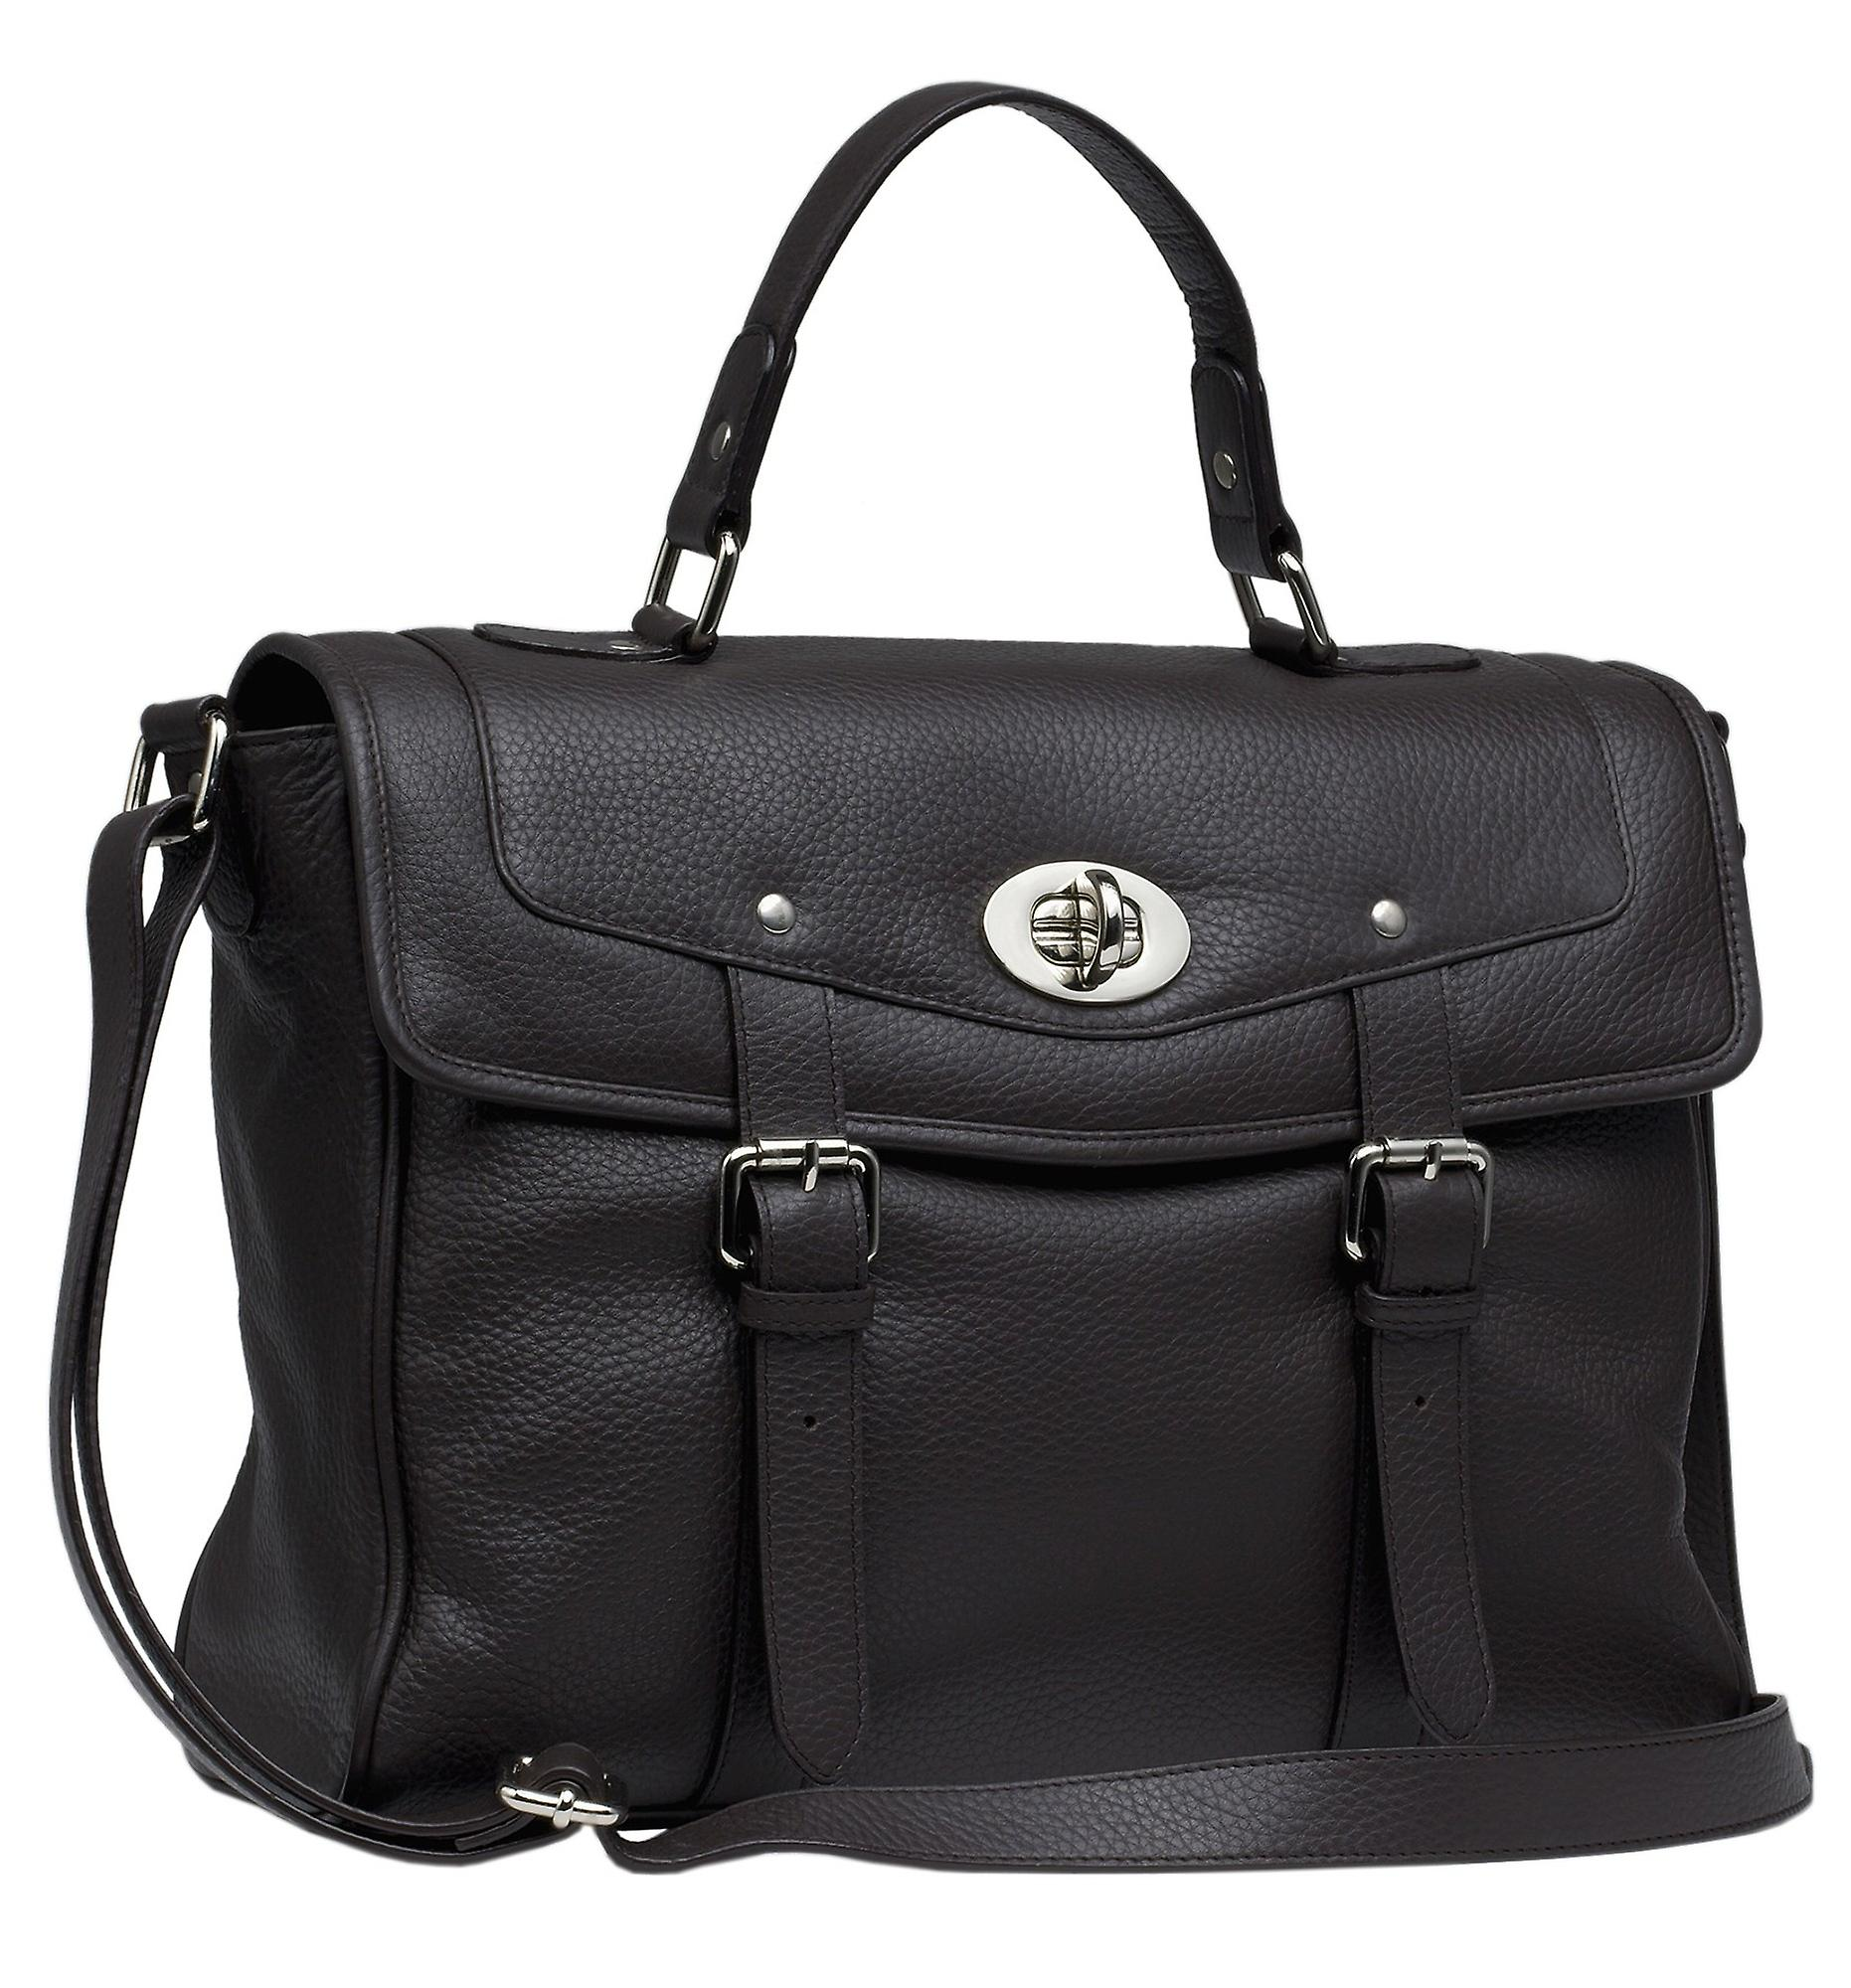 Burgmeister ladies bag T215-215A leather brown